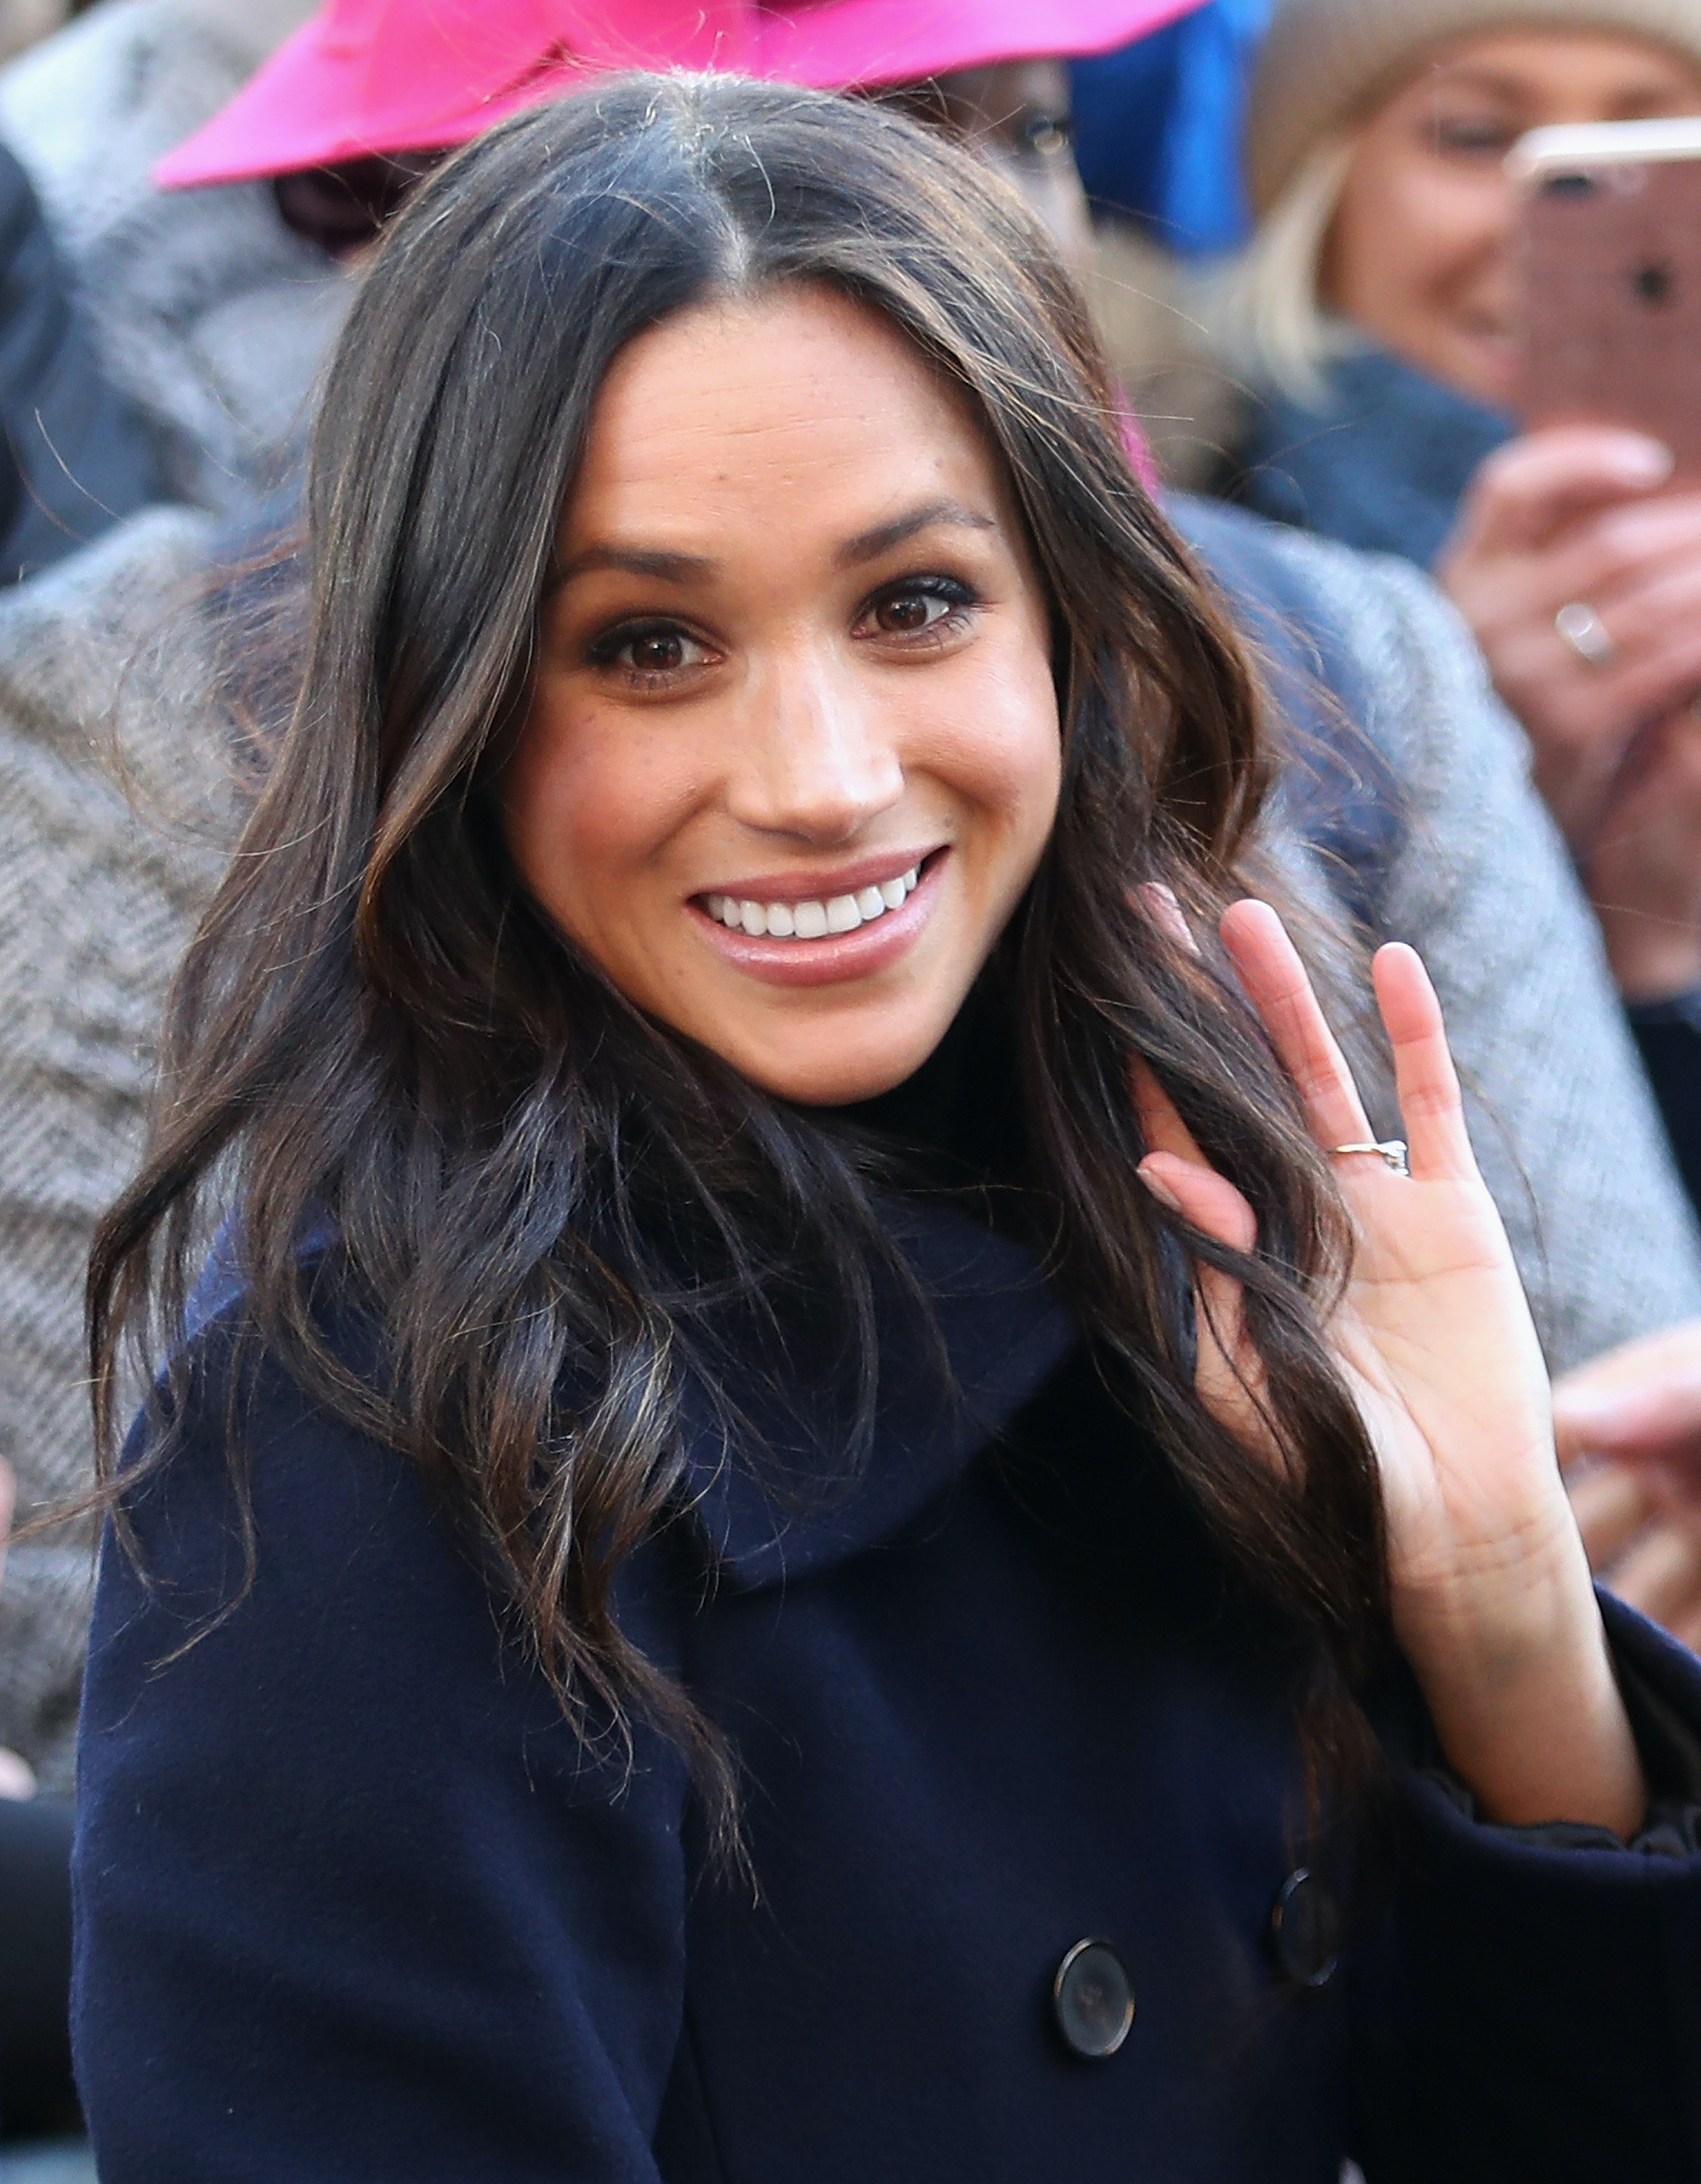 Photos Of Meghan Markle S Natural Hair Has Twitter Praising Curls In The Royal Palace